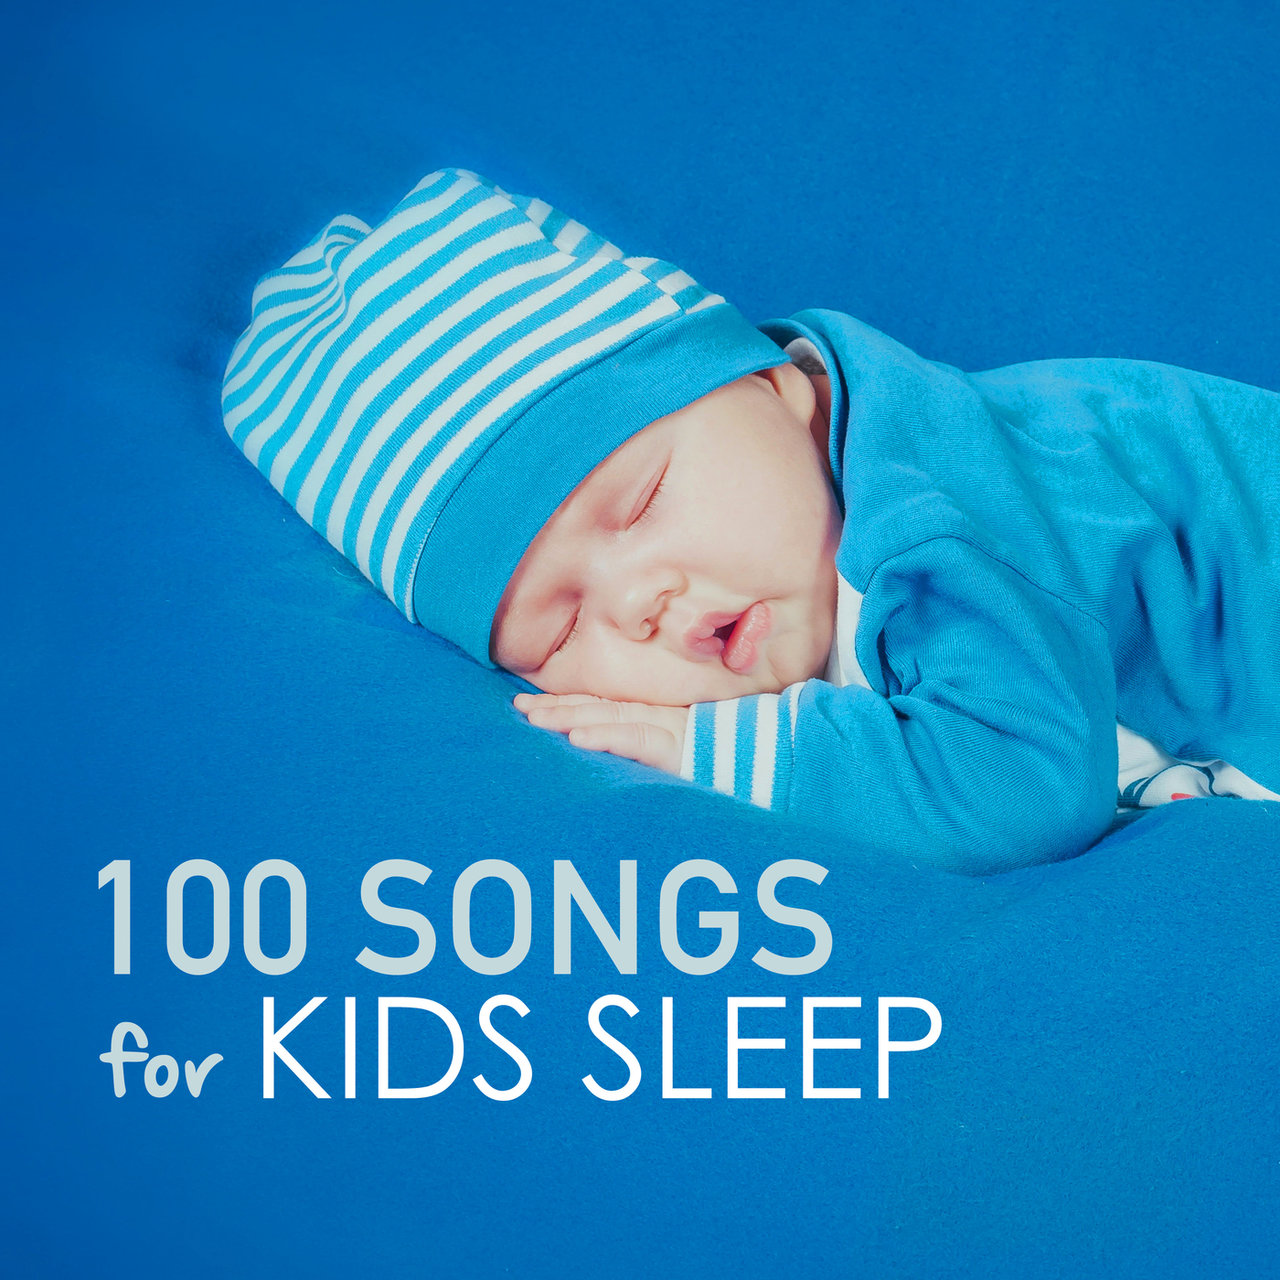 Sleep Music For Kids Listen To 100 Songs For Kids Sleep Deep Sleeping Music For